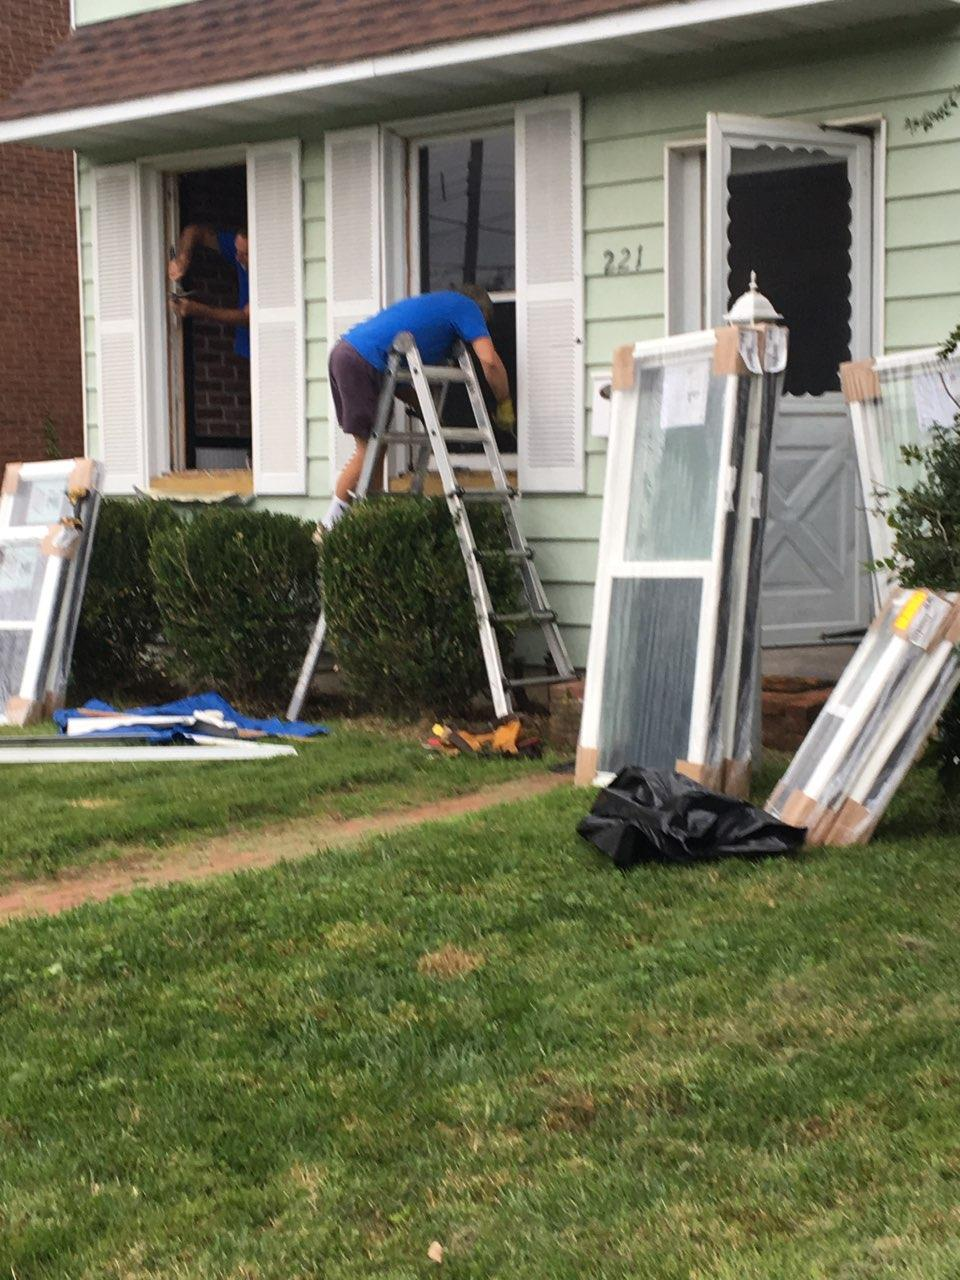 window replacement, window replacement collegeville pa, window replacement pottstown pa, window replacement exeter township township pa, window replacement allentown pa, window replacement boyertown pa, window replacement limerick pa, window replacement birdsborog pa, new windows collegeville pa, new windows pottstown pa, new windows exeter township township pa, new windows allentown pa, new windows boyertown pa, new windows limerick pa, new windows birdsborog pa, door replacement Collegeville pa, door replacement pottstown pa, door replacement exeter township township pa, door replacement Allentown pa, door replacement Boyertown pa, door replacement Limerick pa, door installer Collegeville pa, door installer pottstown pa, door installer exeter township township pa, door installer Allentown pa, door installer Boyertown pa, door installer Limerick pa, door installation Collegeville pa, door installation pottstown pa, door installation exeter township township pa, door installation Allentown pa, door installation Boyertown pa, door installation Limerick pa, window installation collegeville pa, window installation collegeville pa, window installation exeter township pa, window installation allentown pa, window installation boyertown pa, window installation limerick pa, window installation birdsboro pa